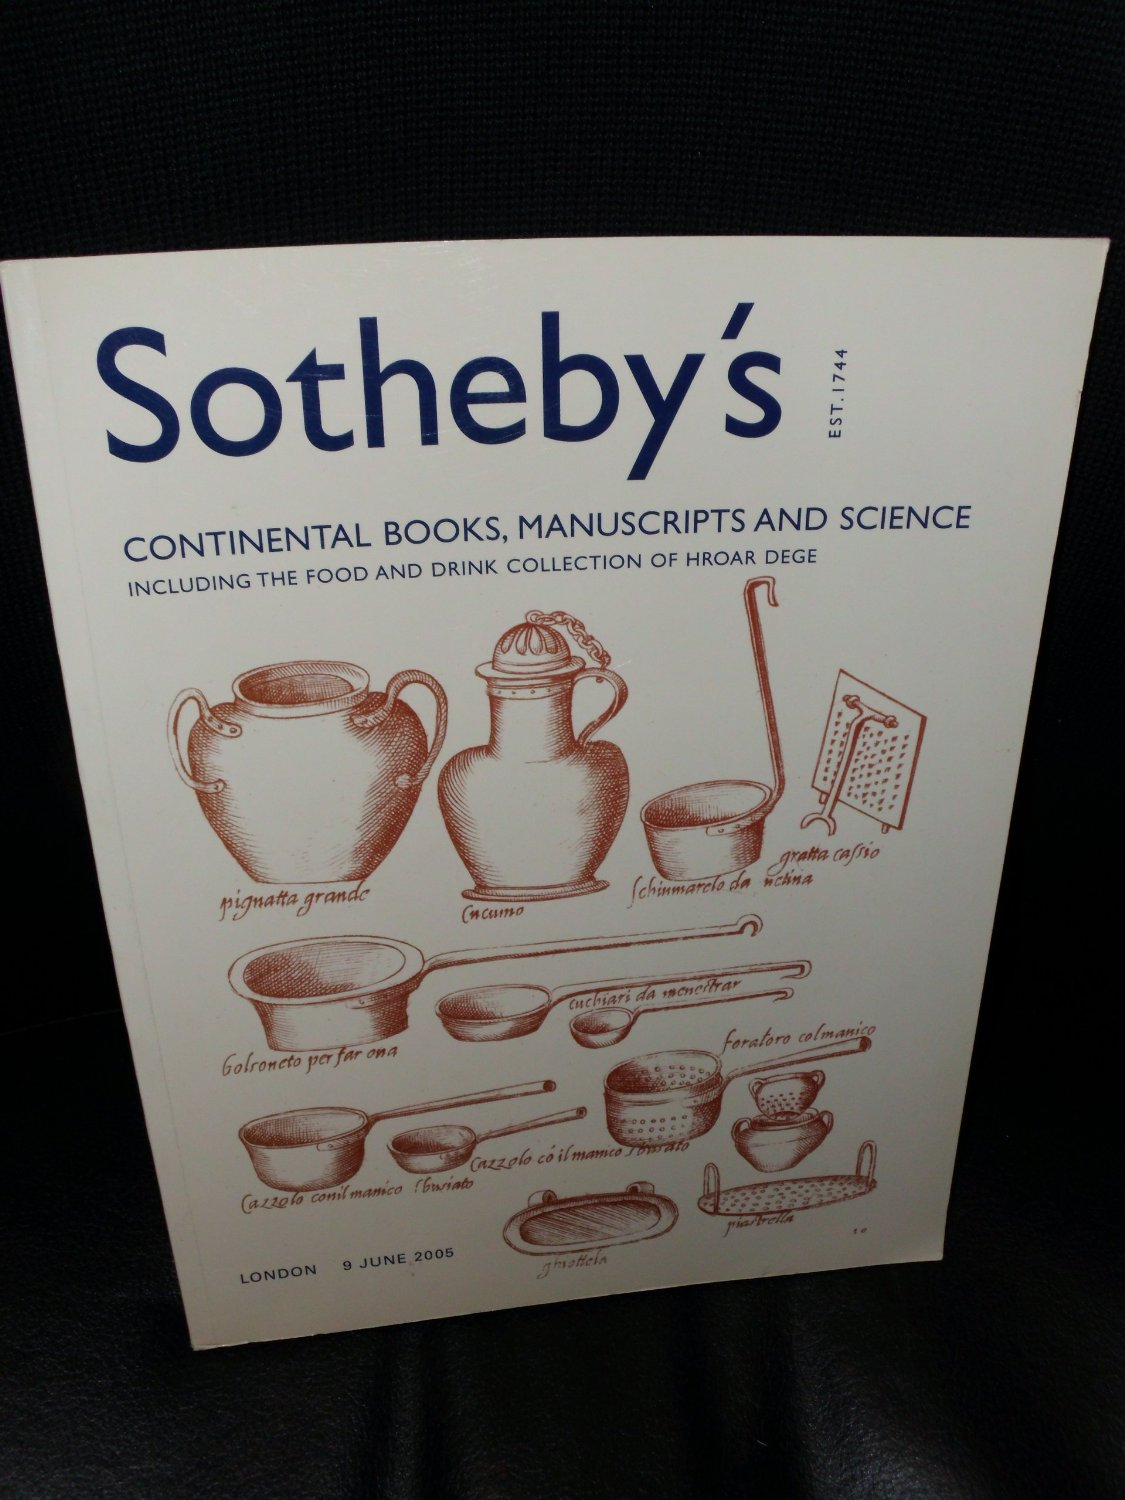 Sotheby's London Auction Catalog - 5406 - June 9, 2005 - Continental Books, Manuscripts and Science: Includes Food and Drink Collection of Hroar Dege